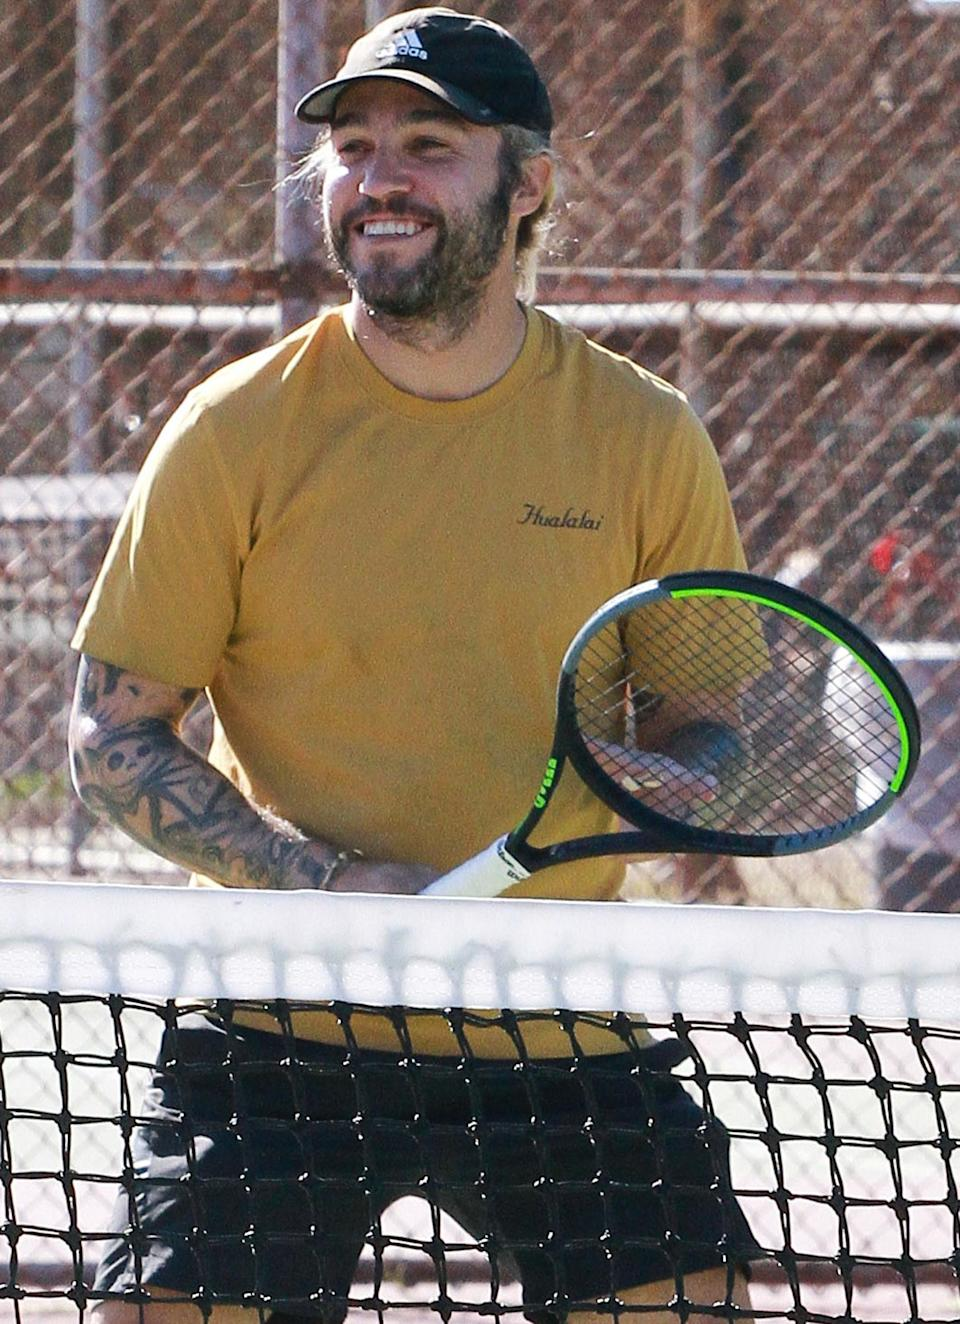 <p>Pete Wentz is in great spirits while playing tennis on Monday in L.A.</p>